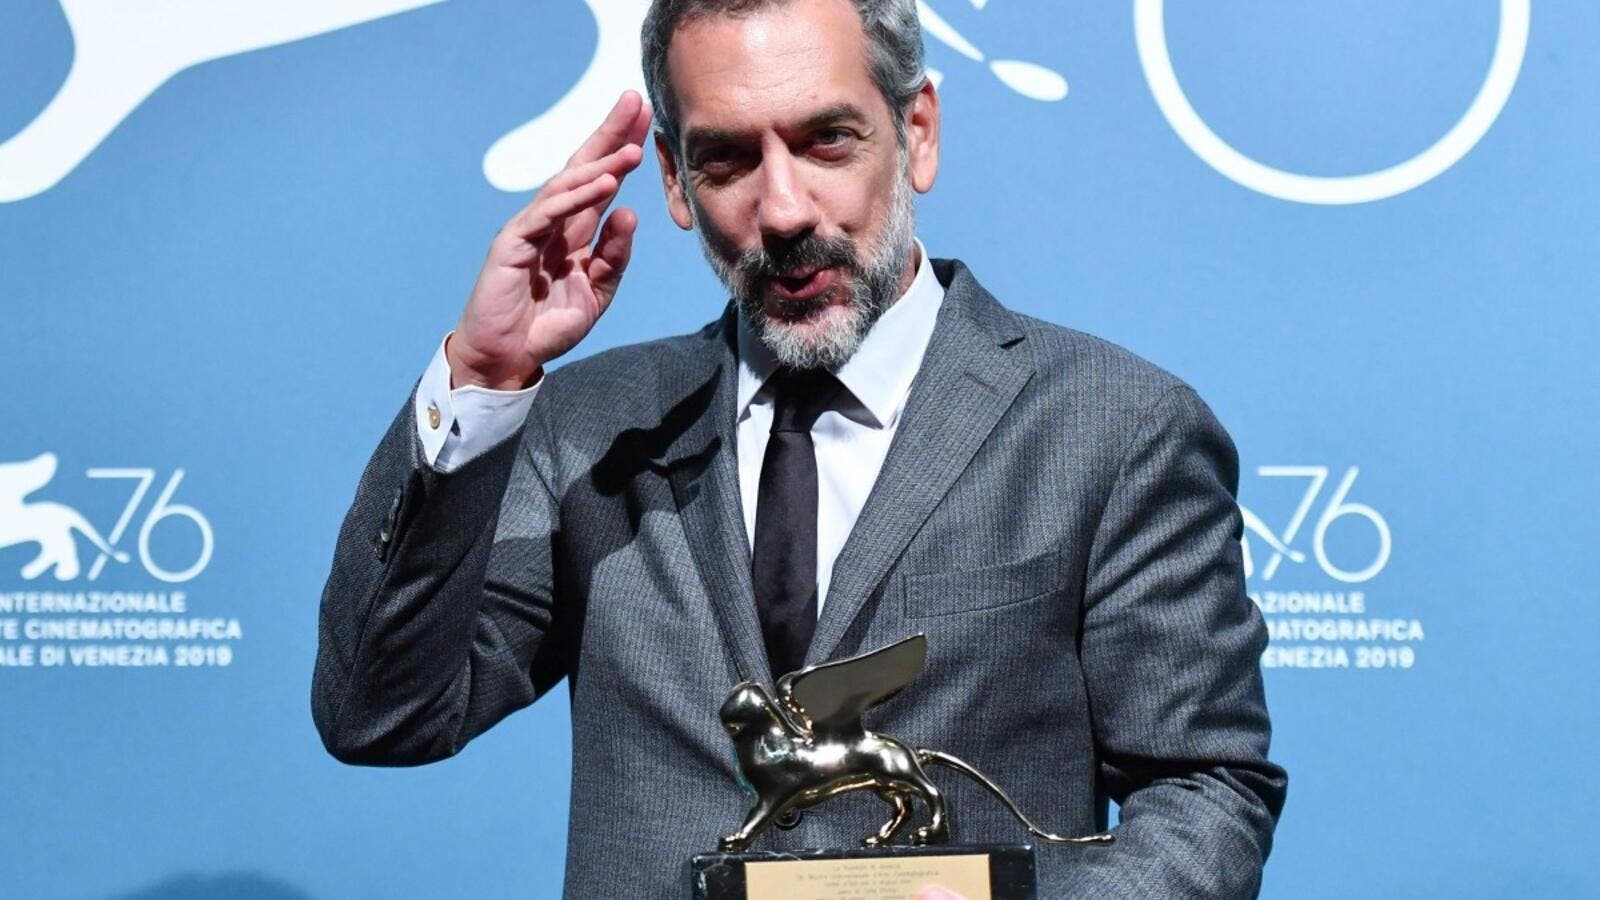 US director Todd Phillips holds the Golden Lion award for best film he won for Joker at the Venice International Film Festival this month. ( AFP)